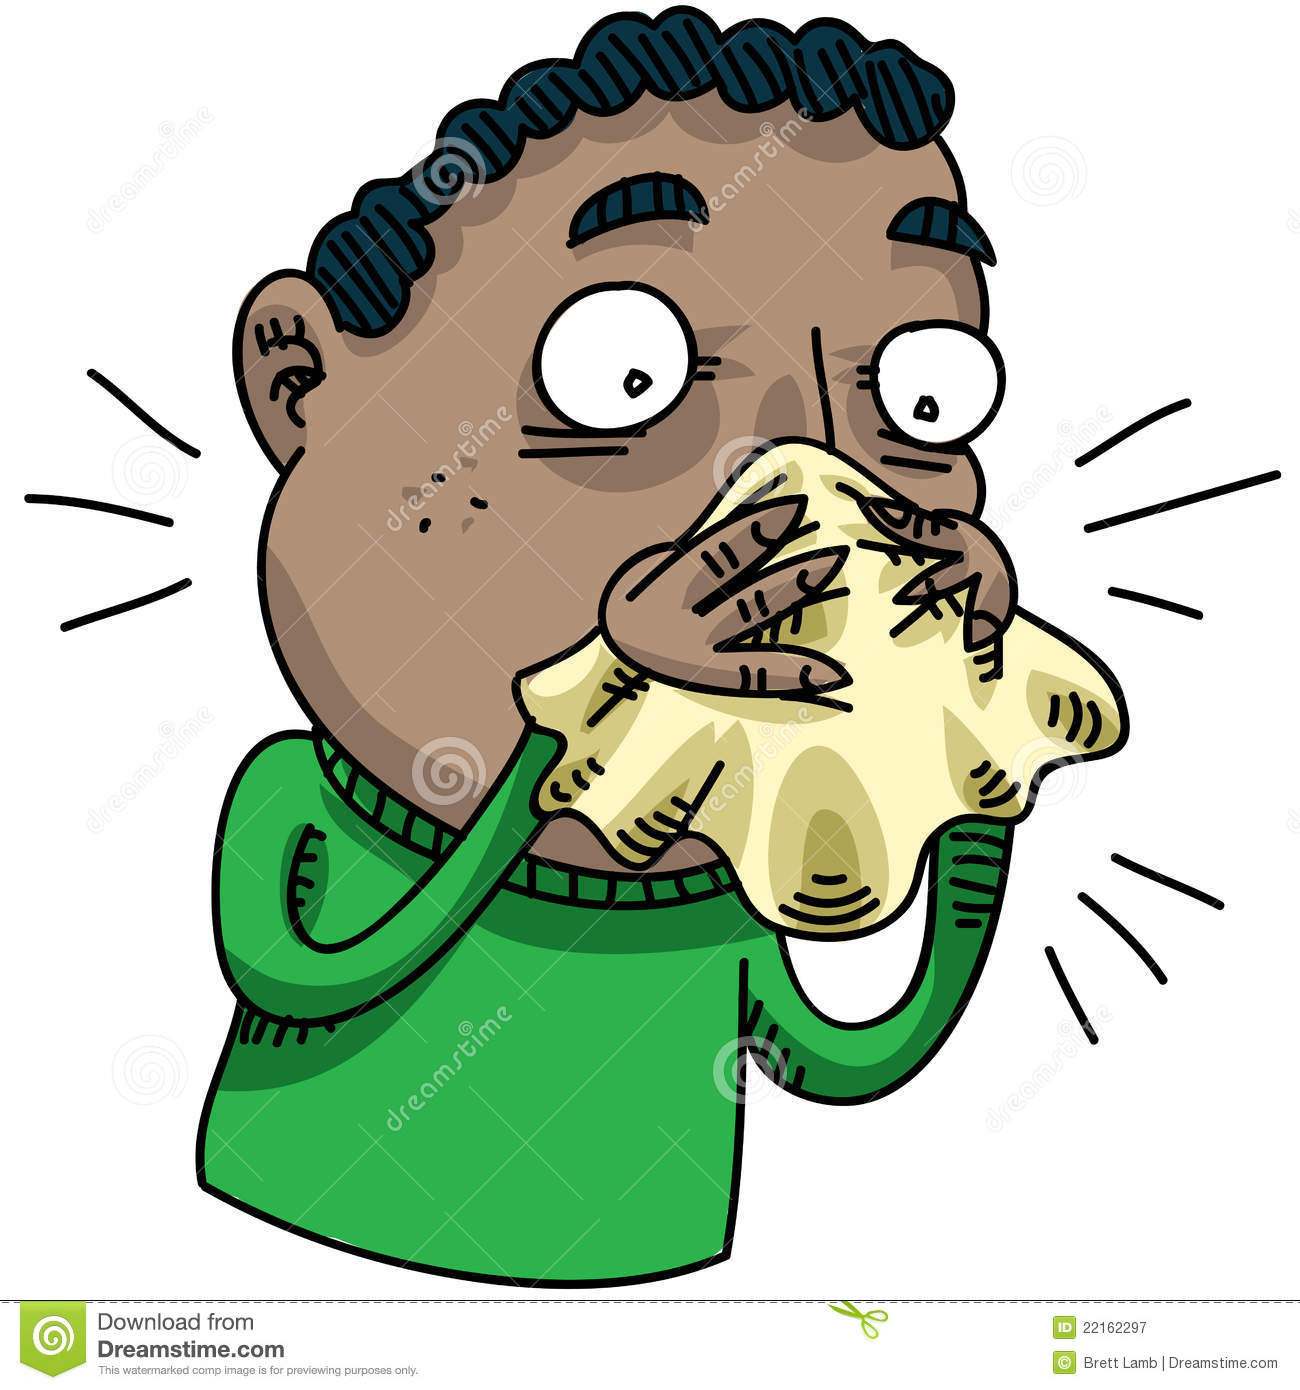 Man Blowing Nose Royalty Free Stock Photography - Image: 22162297